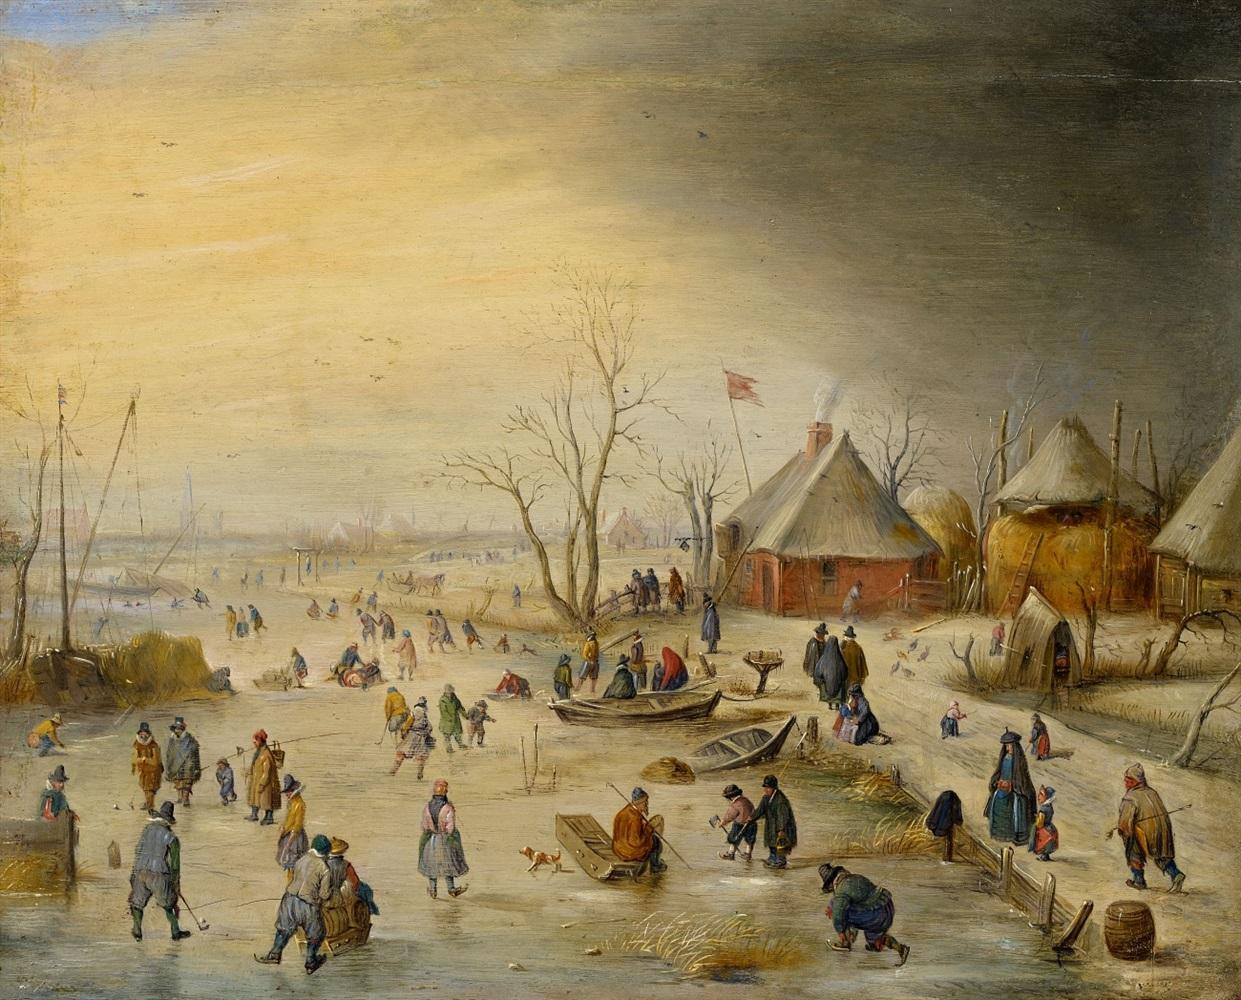 De Stomme Van Kampen Hendrick Avercamp Biography Artwork Galleries Online Blouin